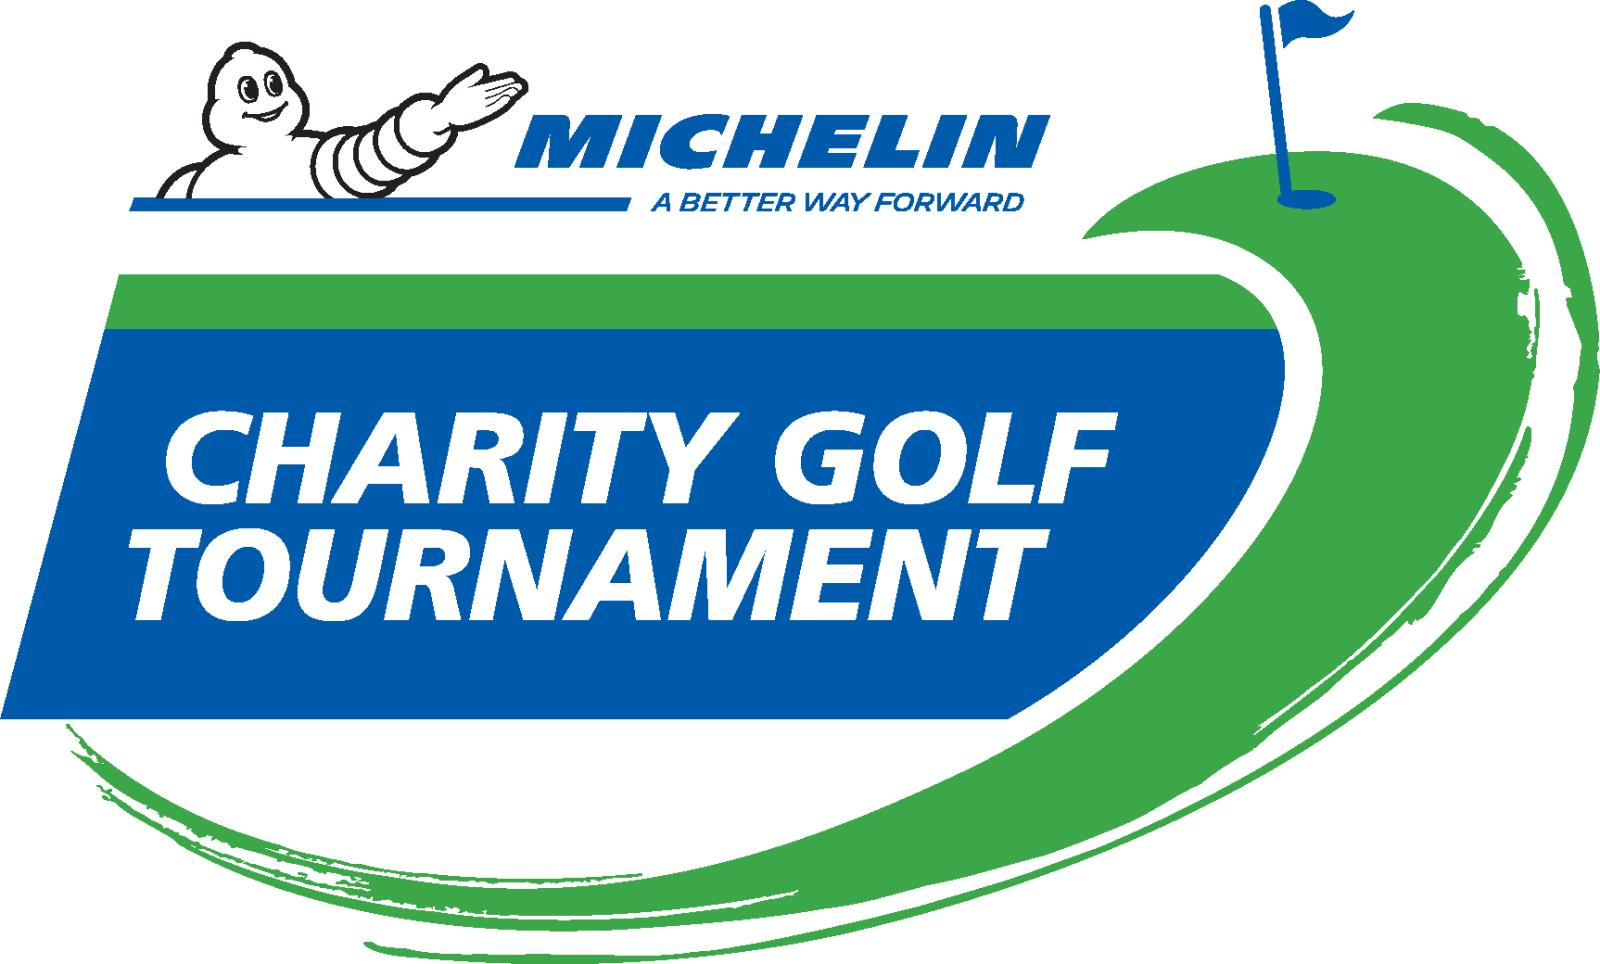 2017_MichMNA_Charity_GolfTournament_Logo_4C.jpg